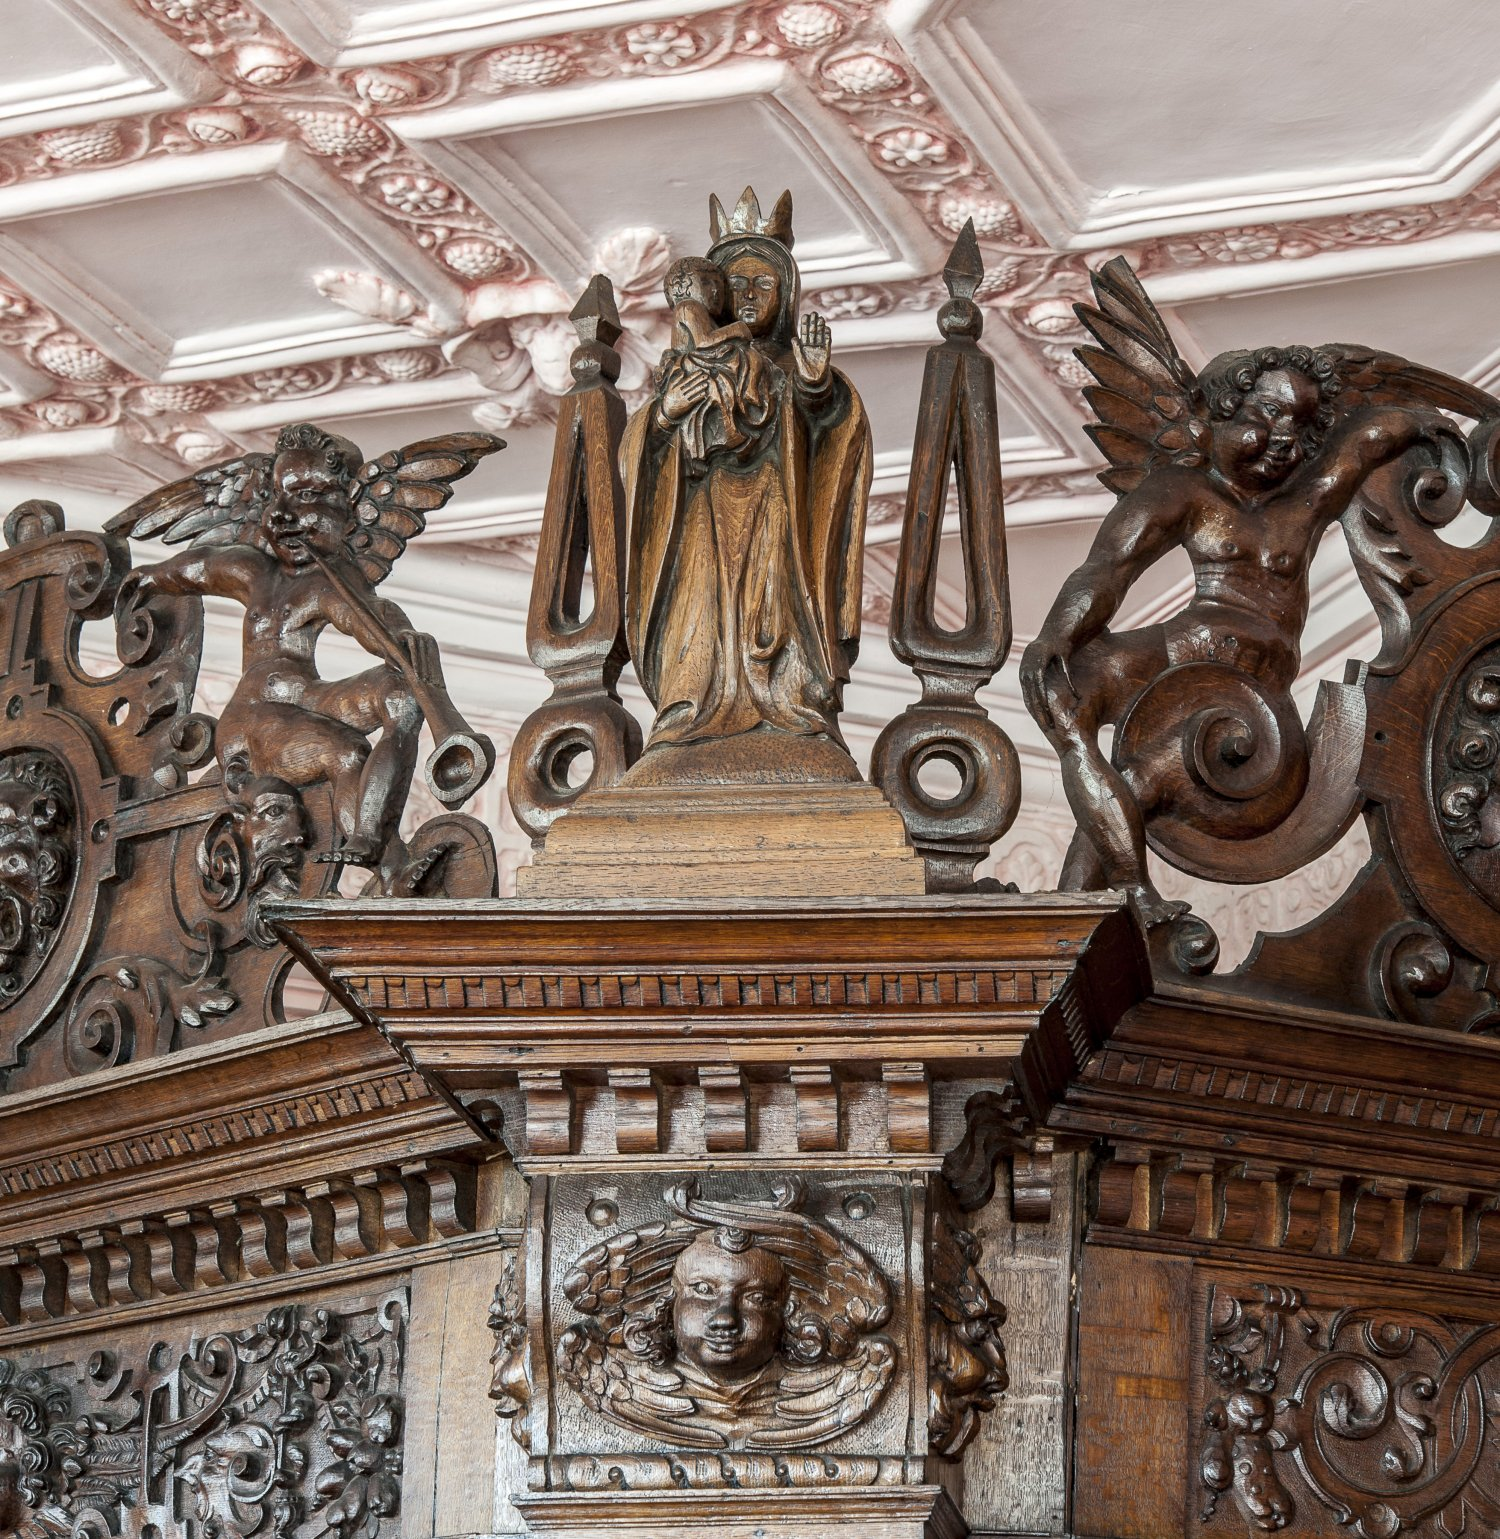 Restoration and replacement carvings in the late C16th Job Room